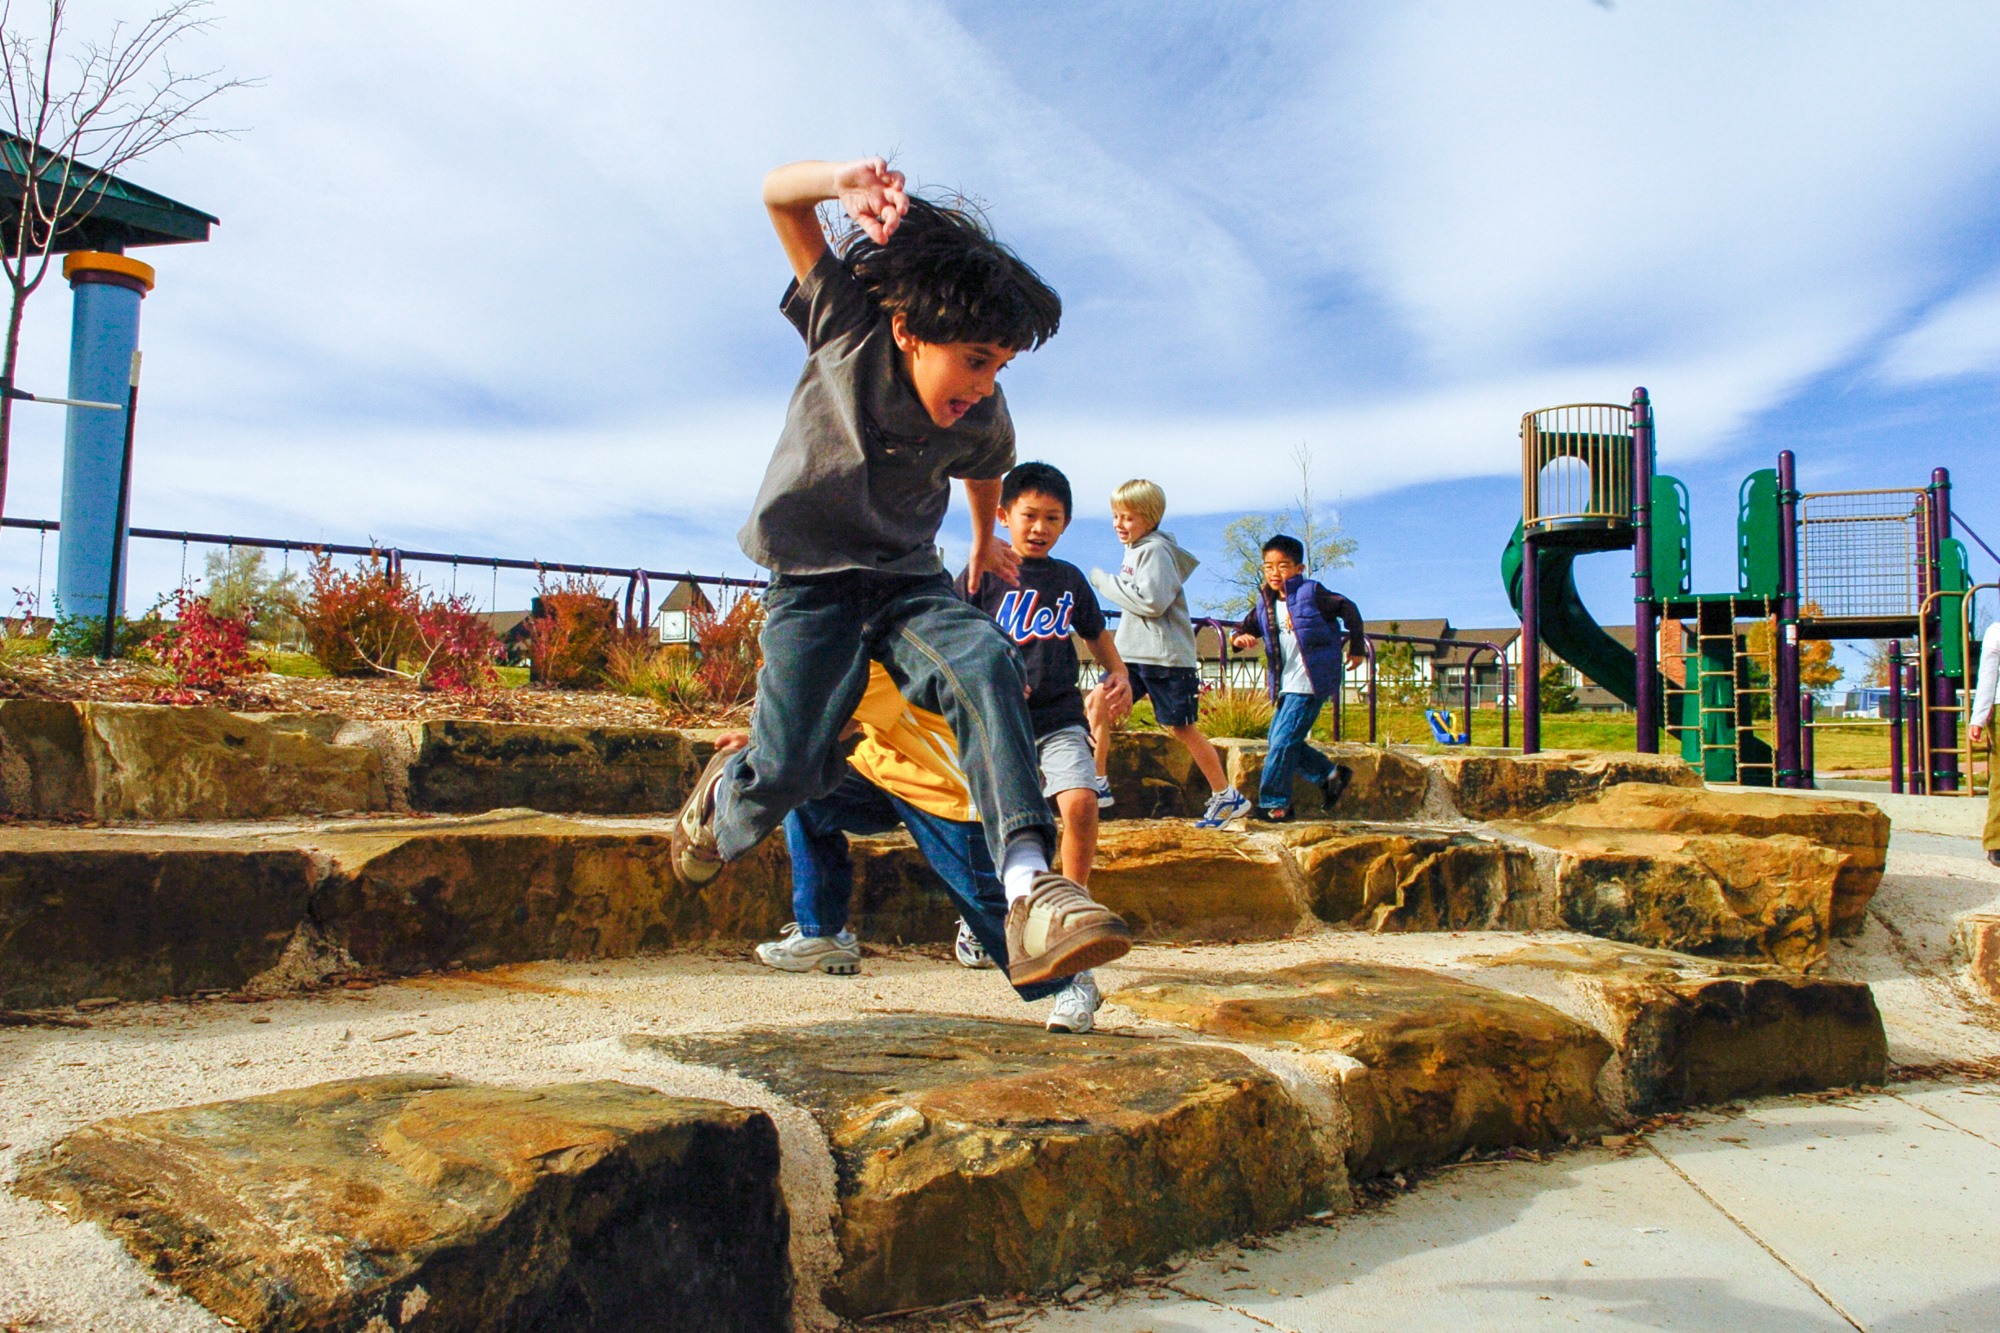 School playground learning landscape outdoor classroom amphitheater